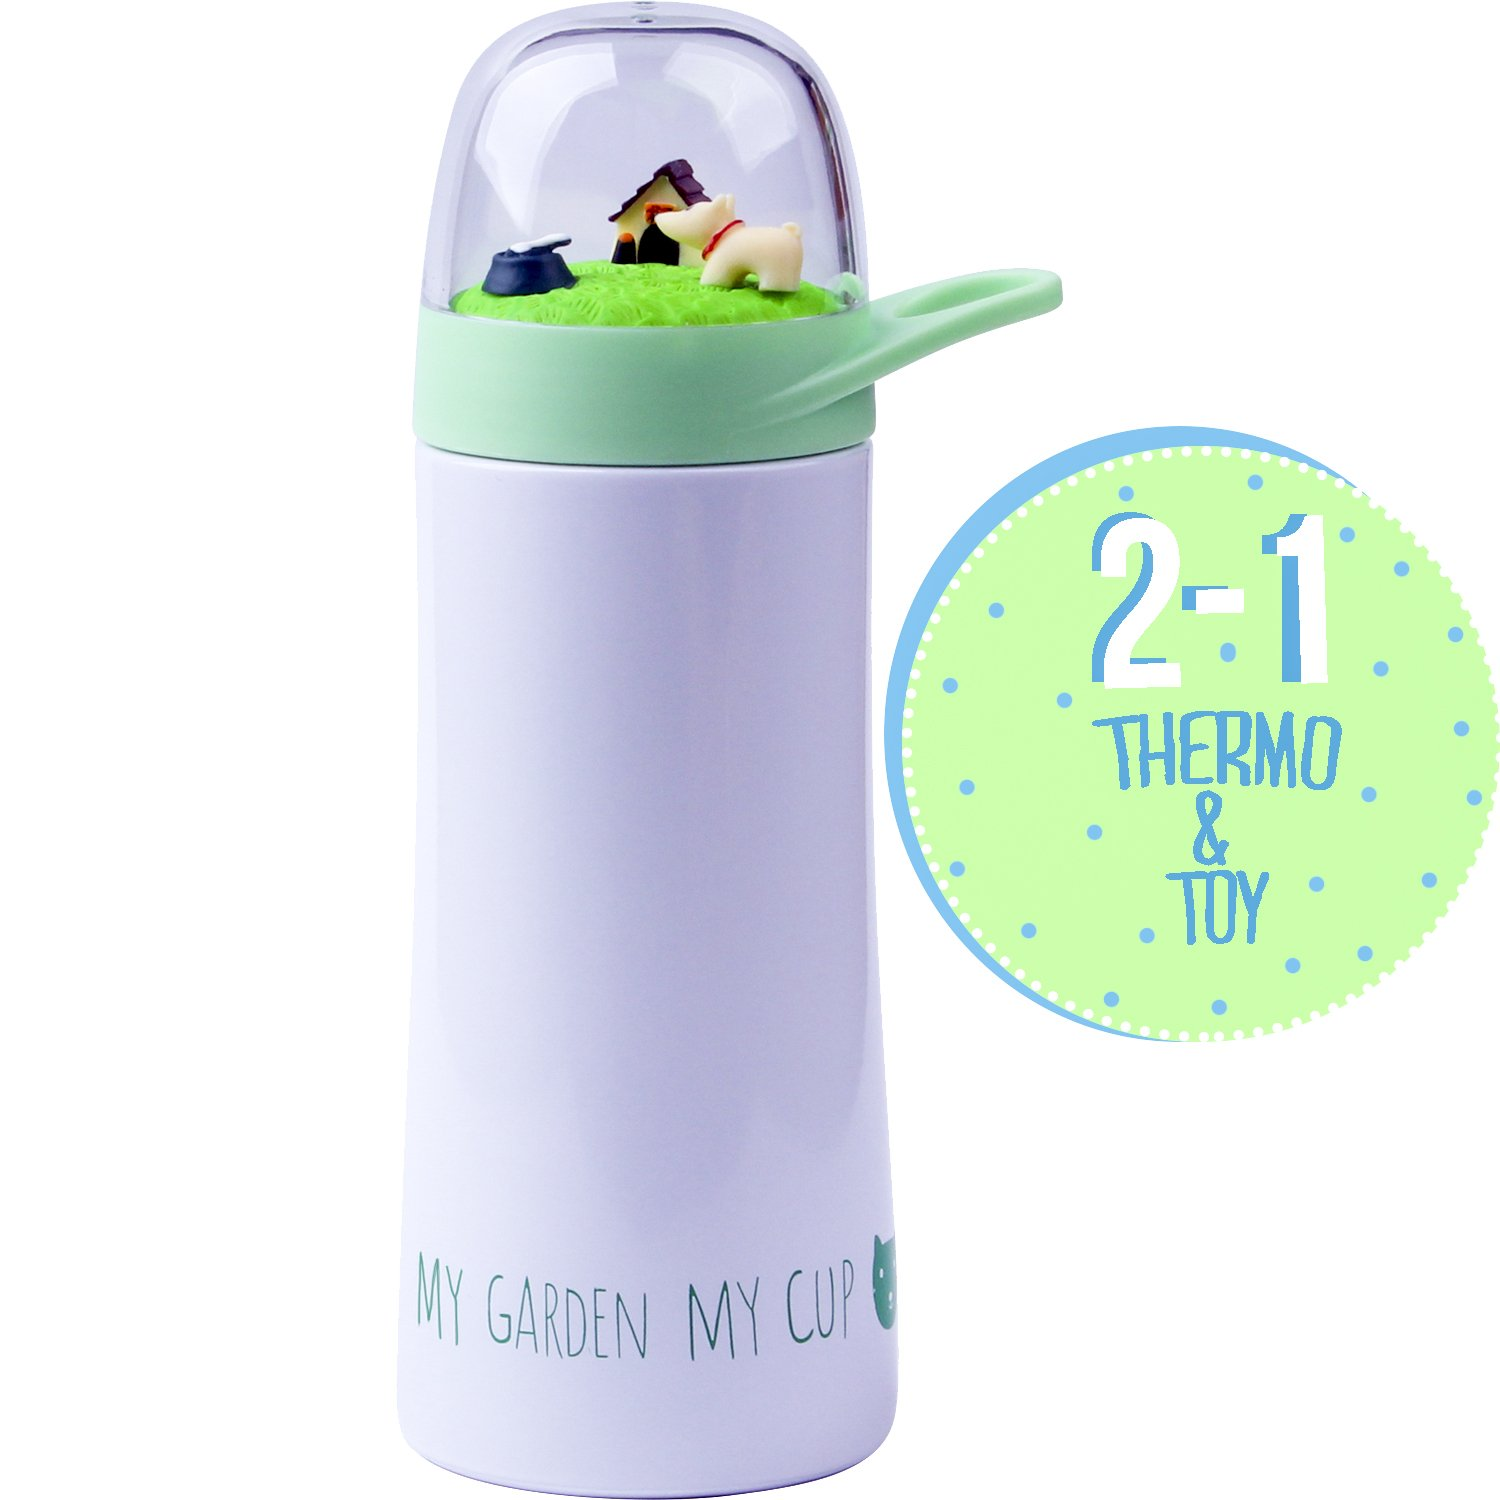 Stainless-Steel Water Bottle For Children with Toy Cap Perfect for School - Unique Insulated Container for Boys and Girls, Keep Their Beverage Cold or Hot - Toddler Grey Vacuum Thermo